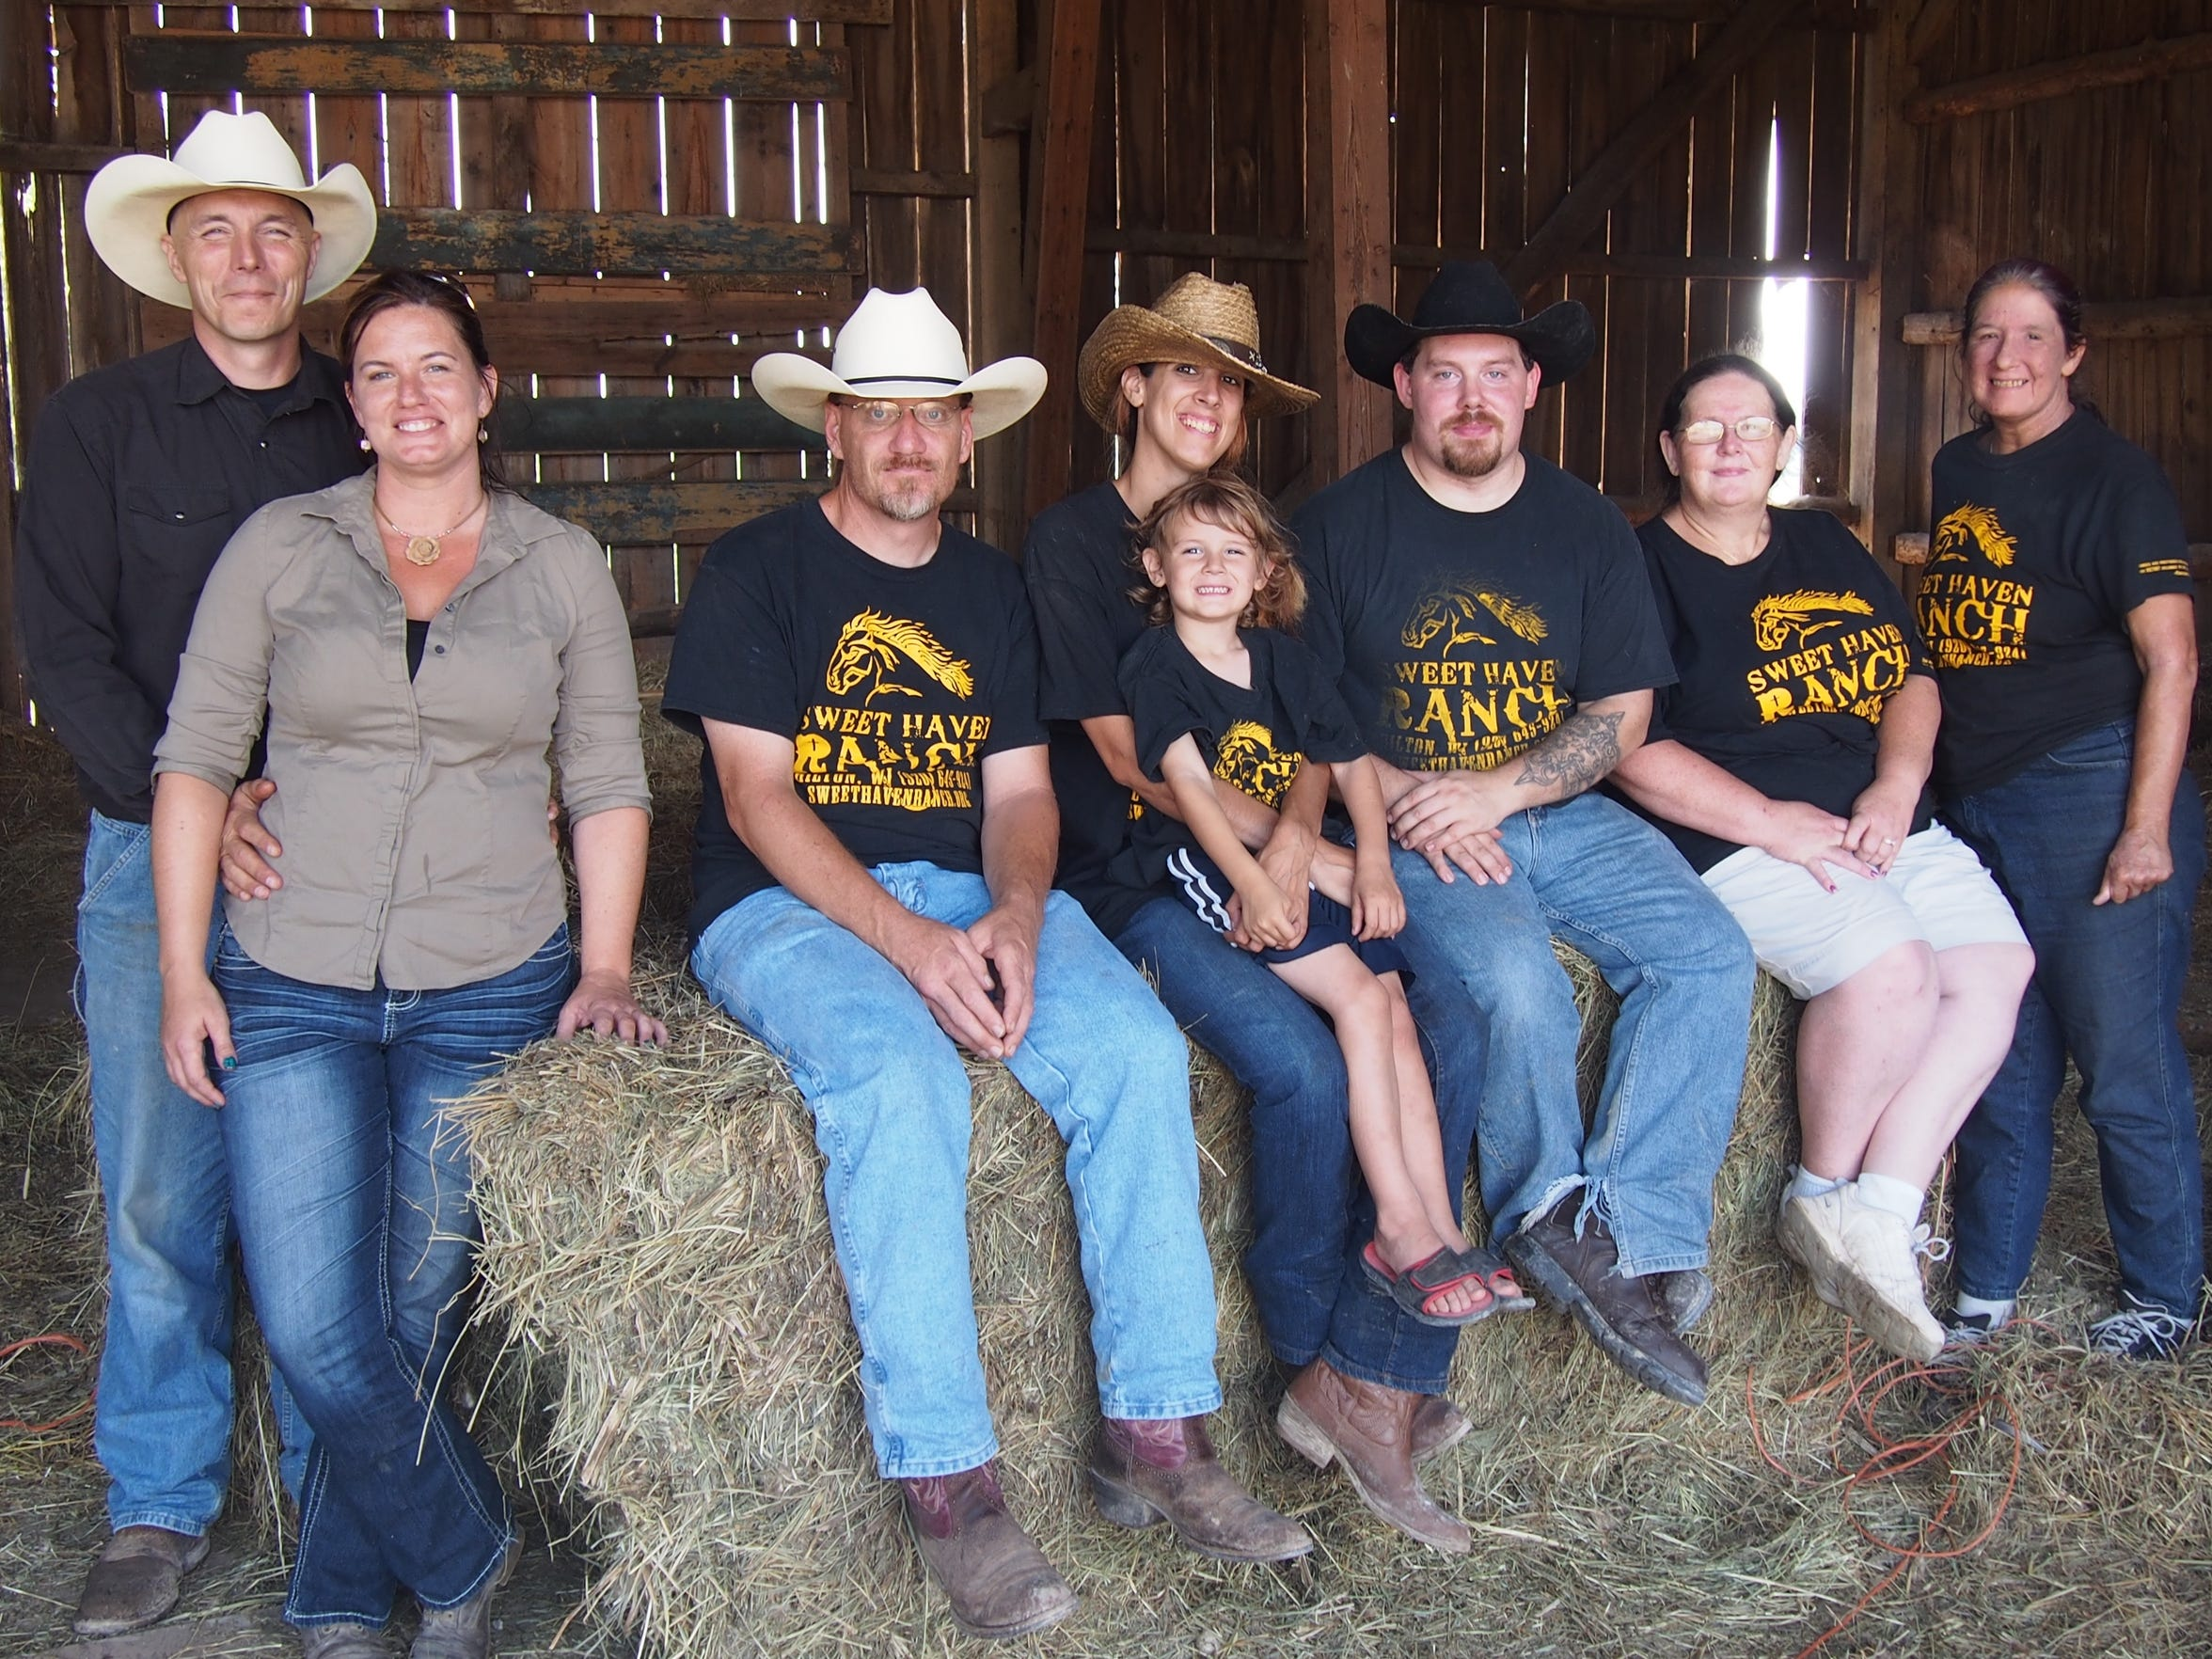 Ward, left, and his fiance pose with volunteers on a hay bale.